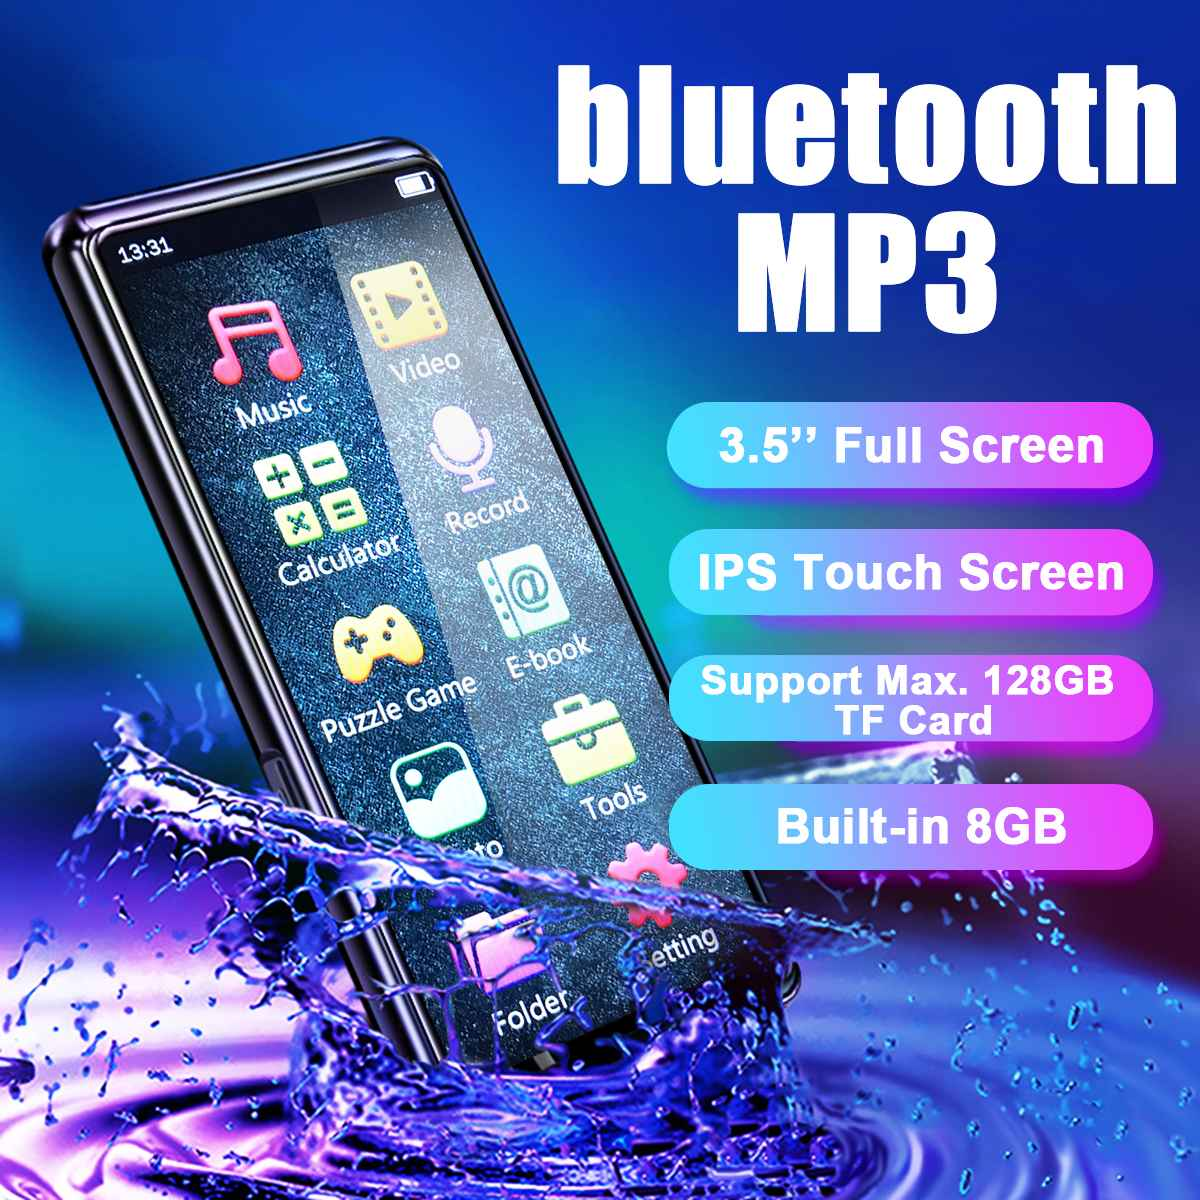 3.5'' IPS Touch Full Screen Bluetooth MP3 MP4 Player Long Standby Portable Walkman Support FM Radio Video Music E-book Player